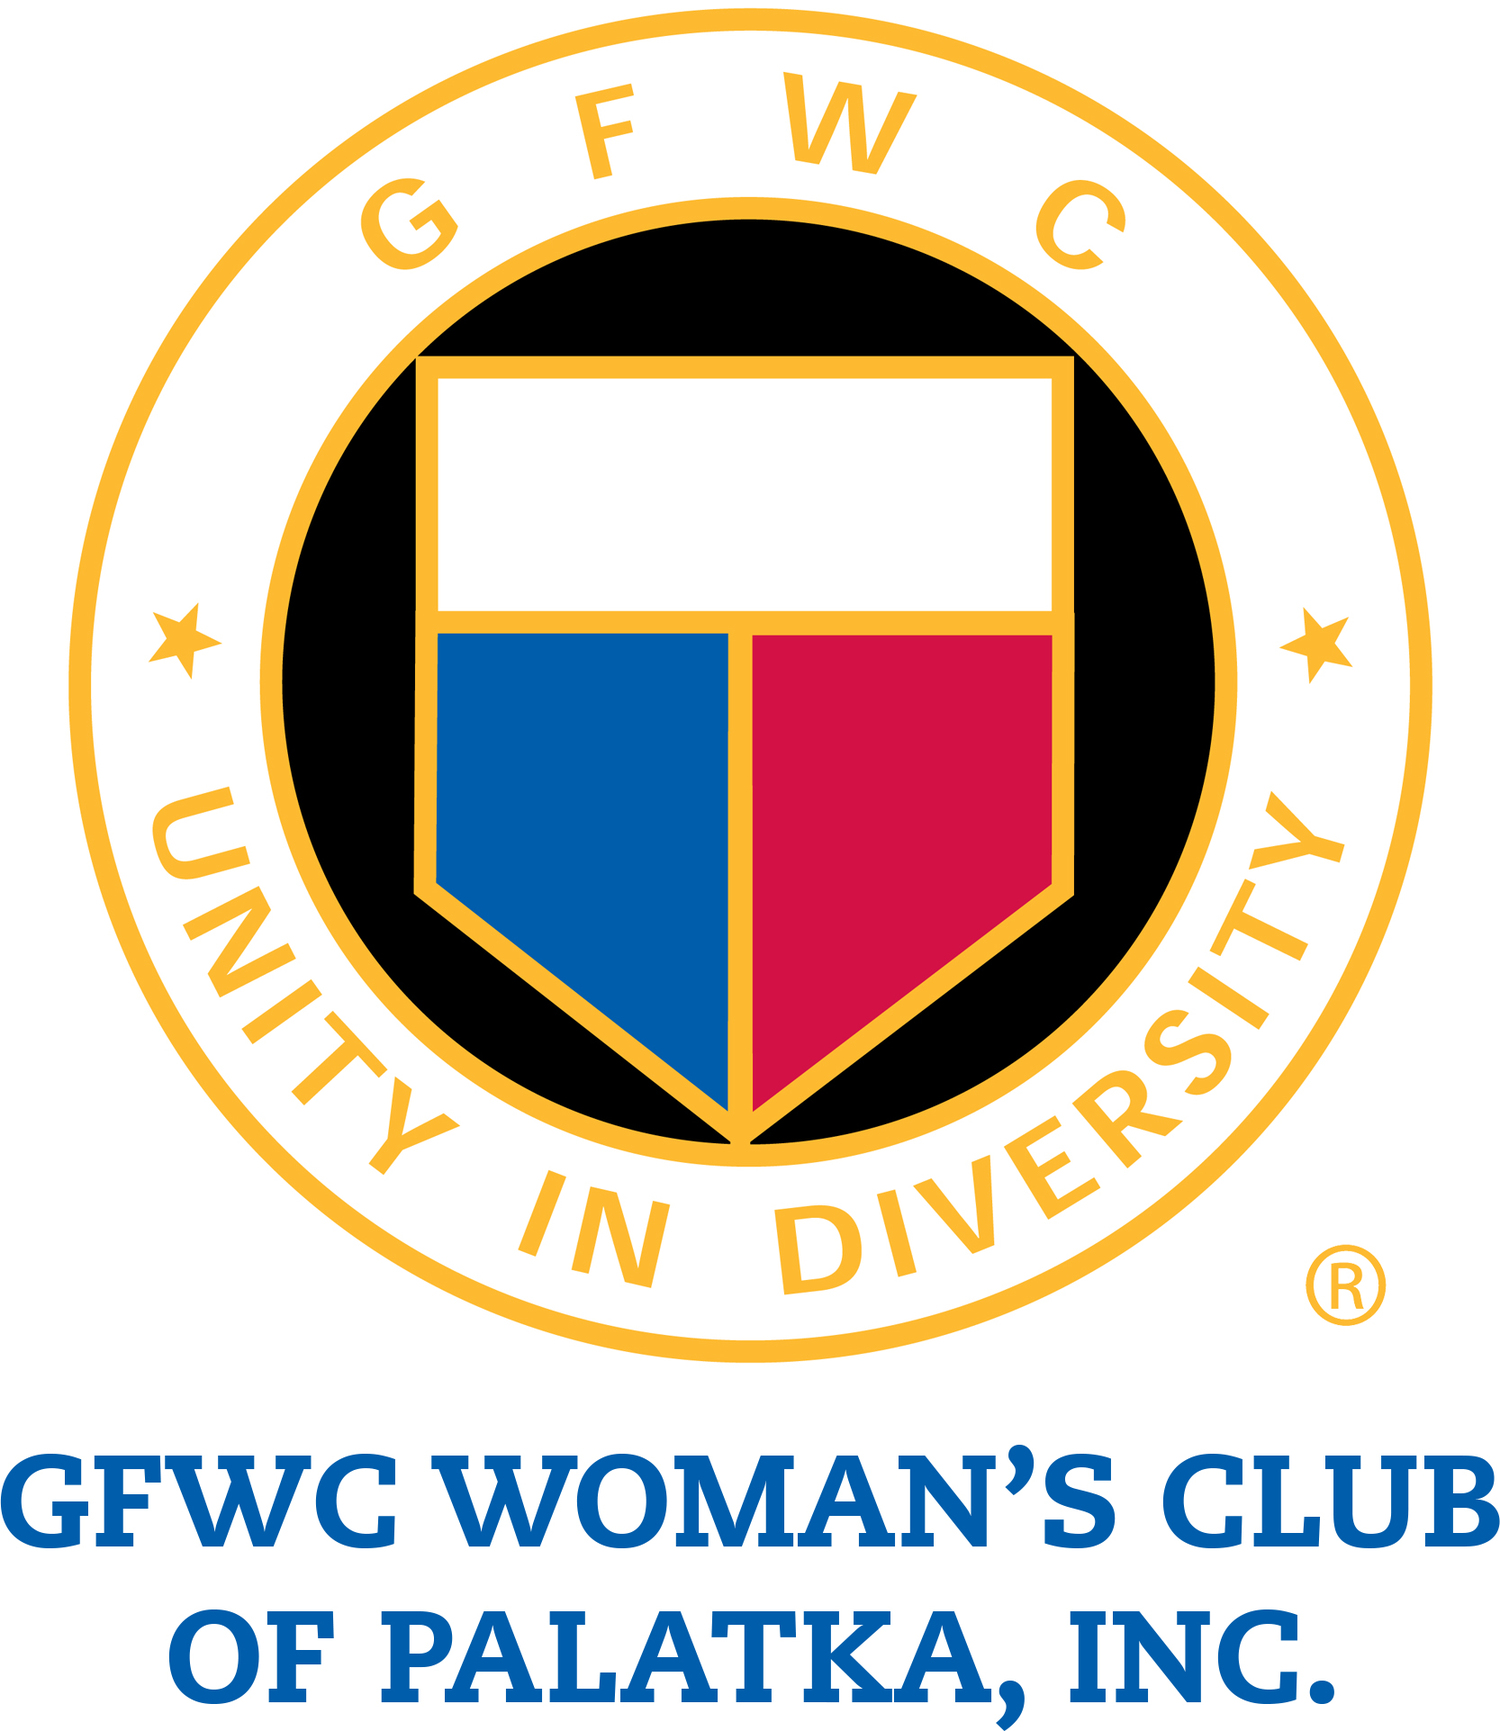 GFWC Woman's Club of Palatka, Inc.